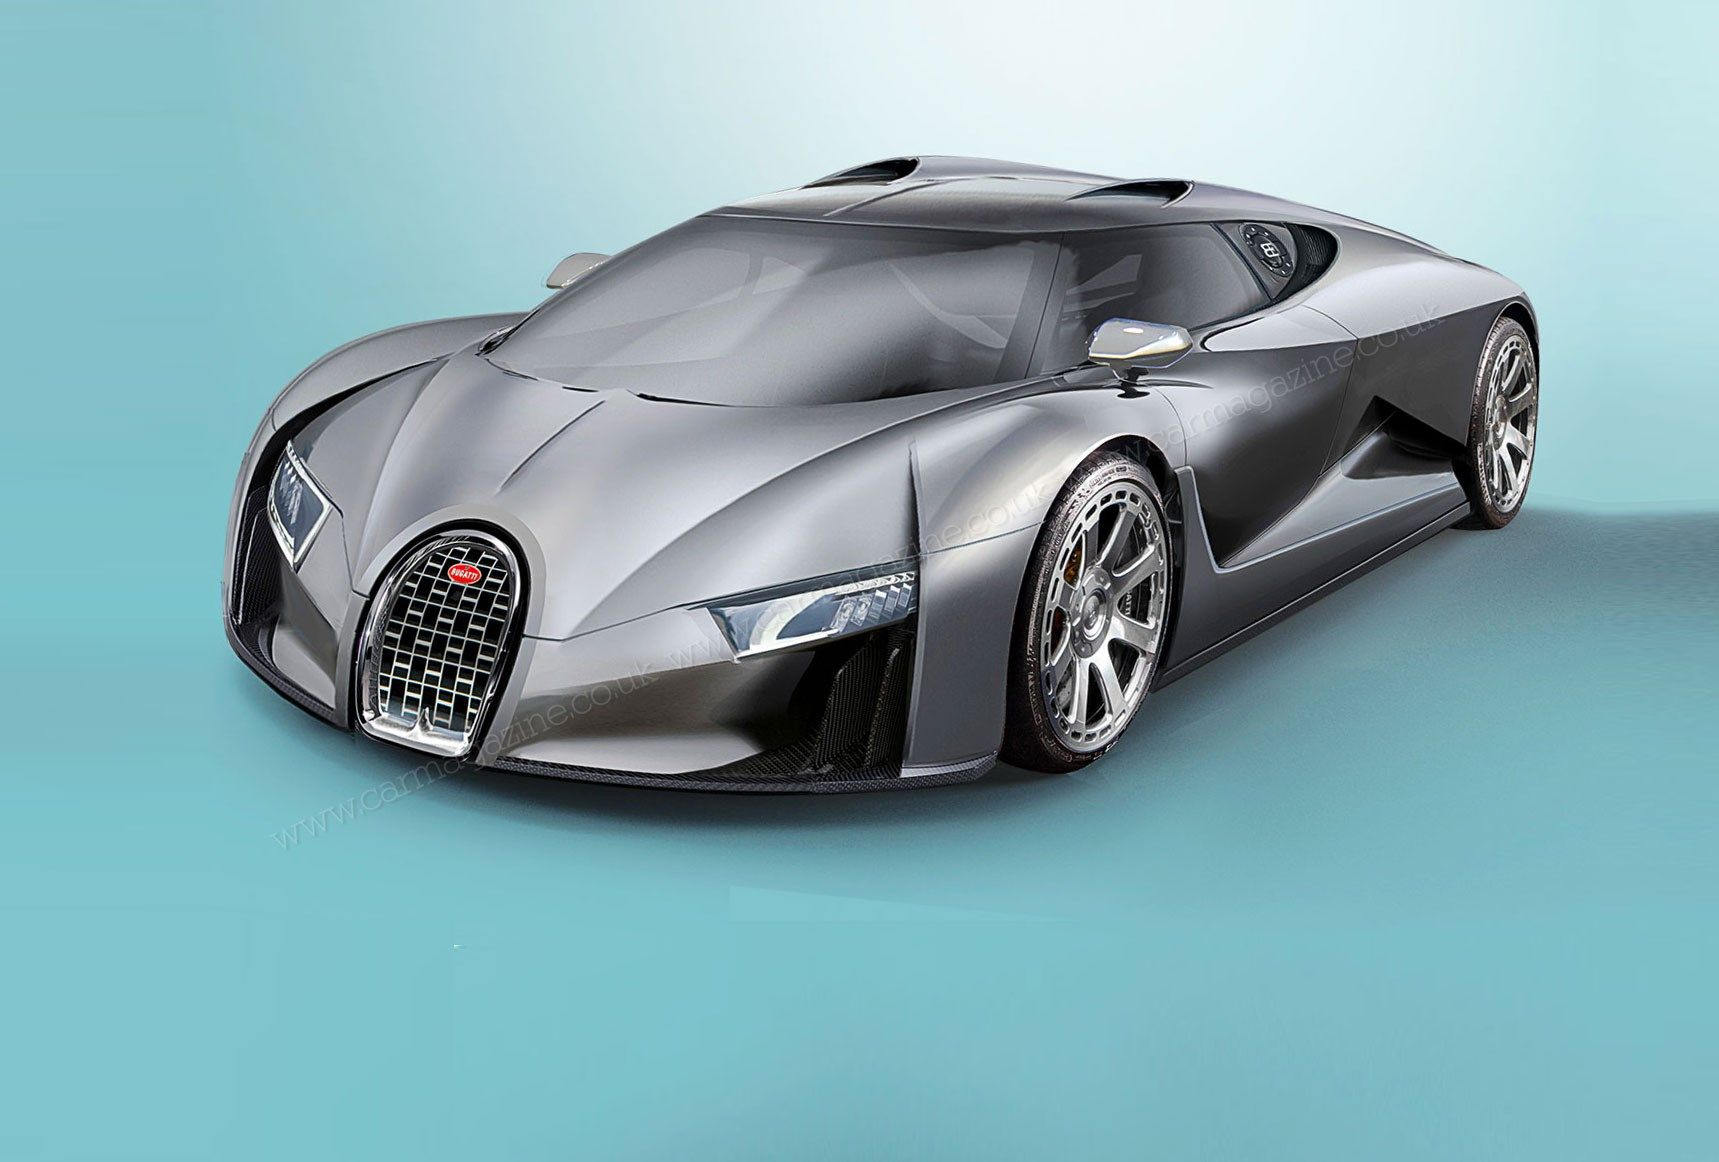 know about the latest model of bugatti chiron latest new car